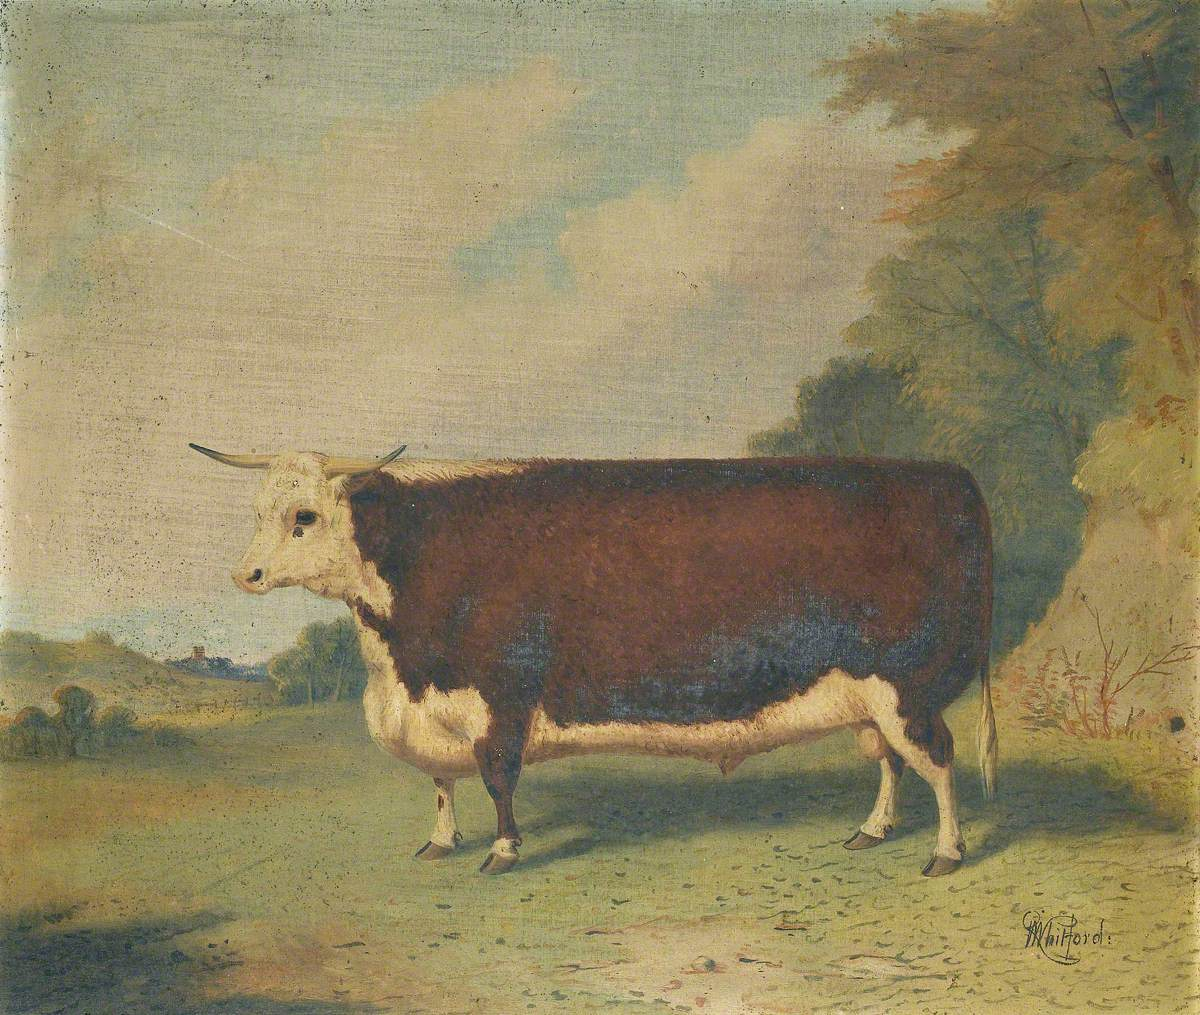 A Prize Cow in a Landscape